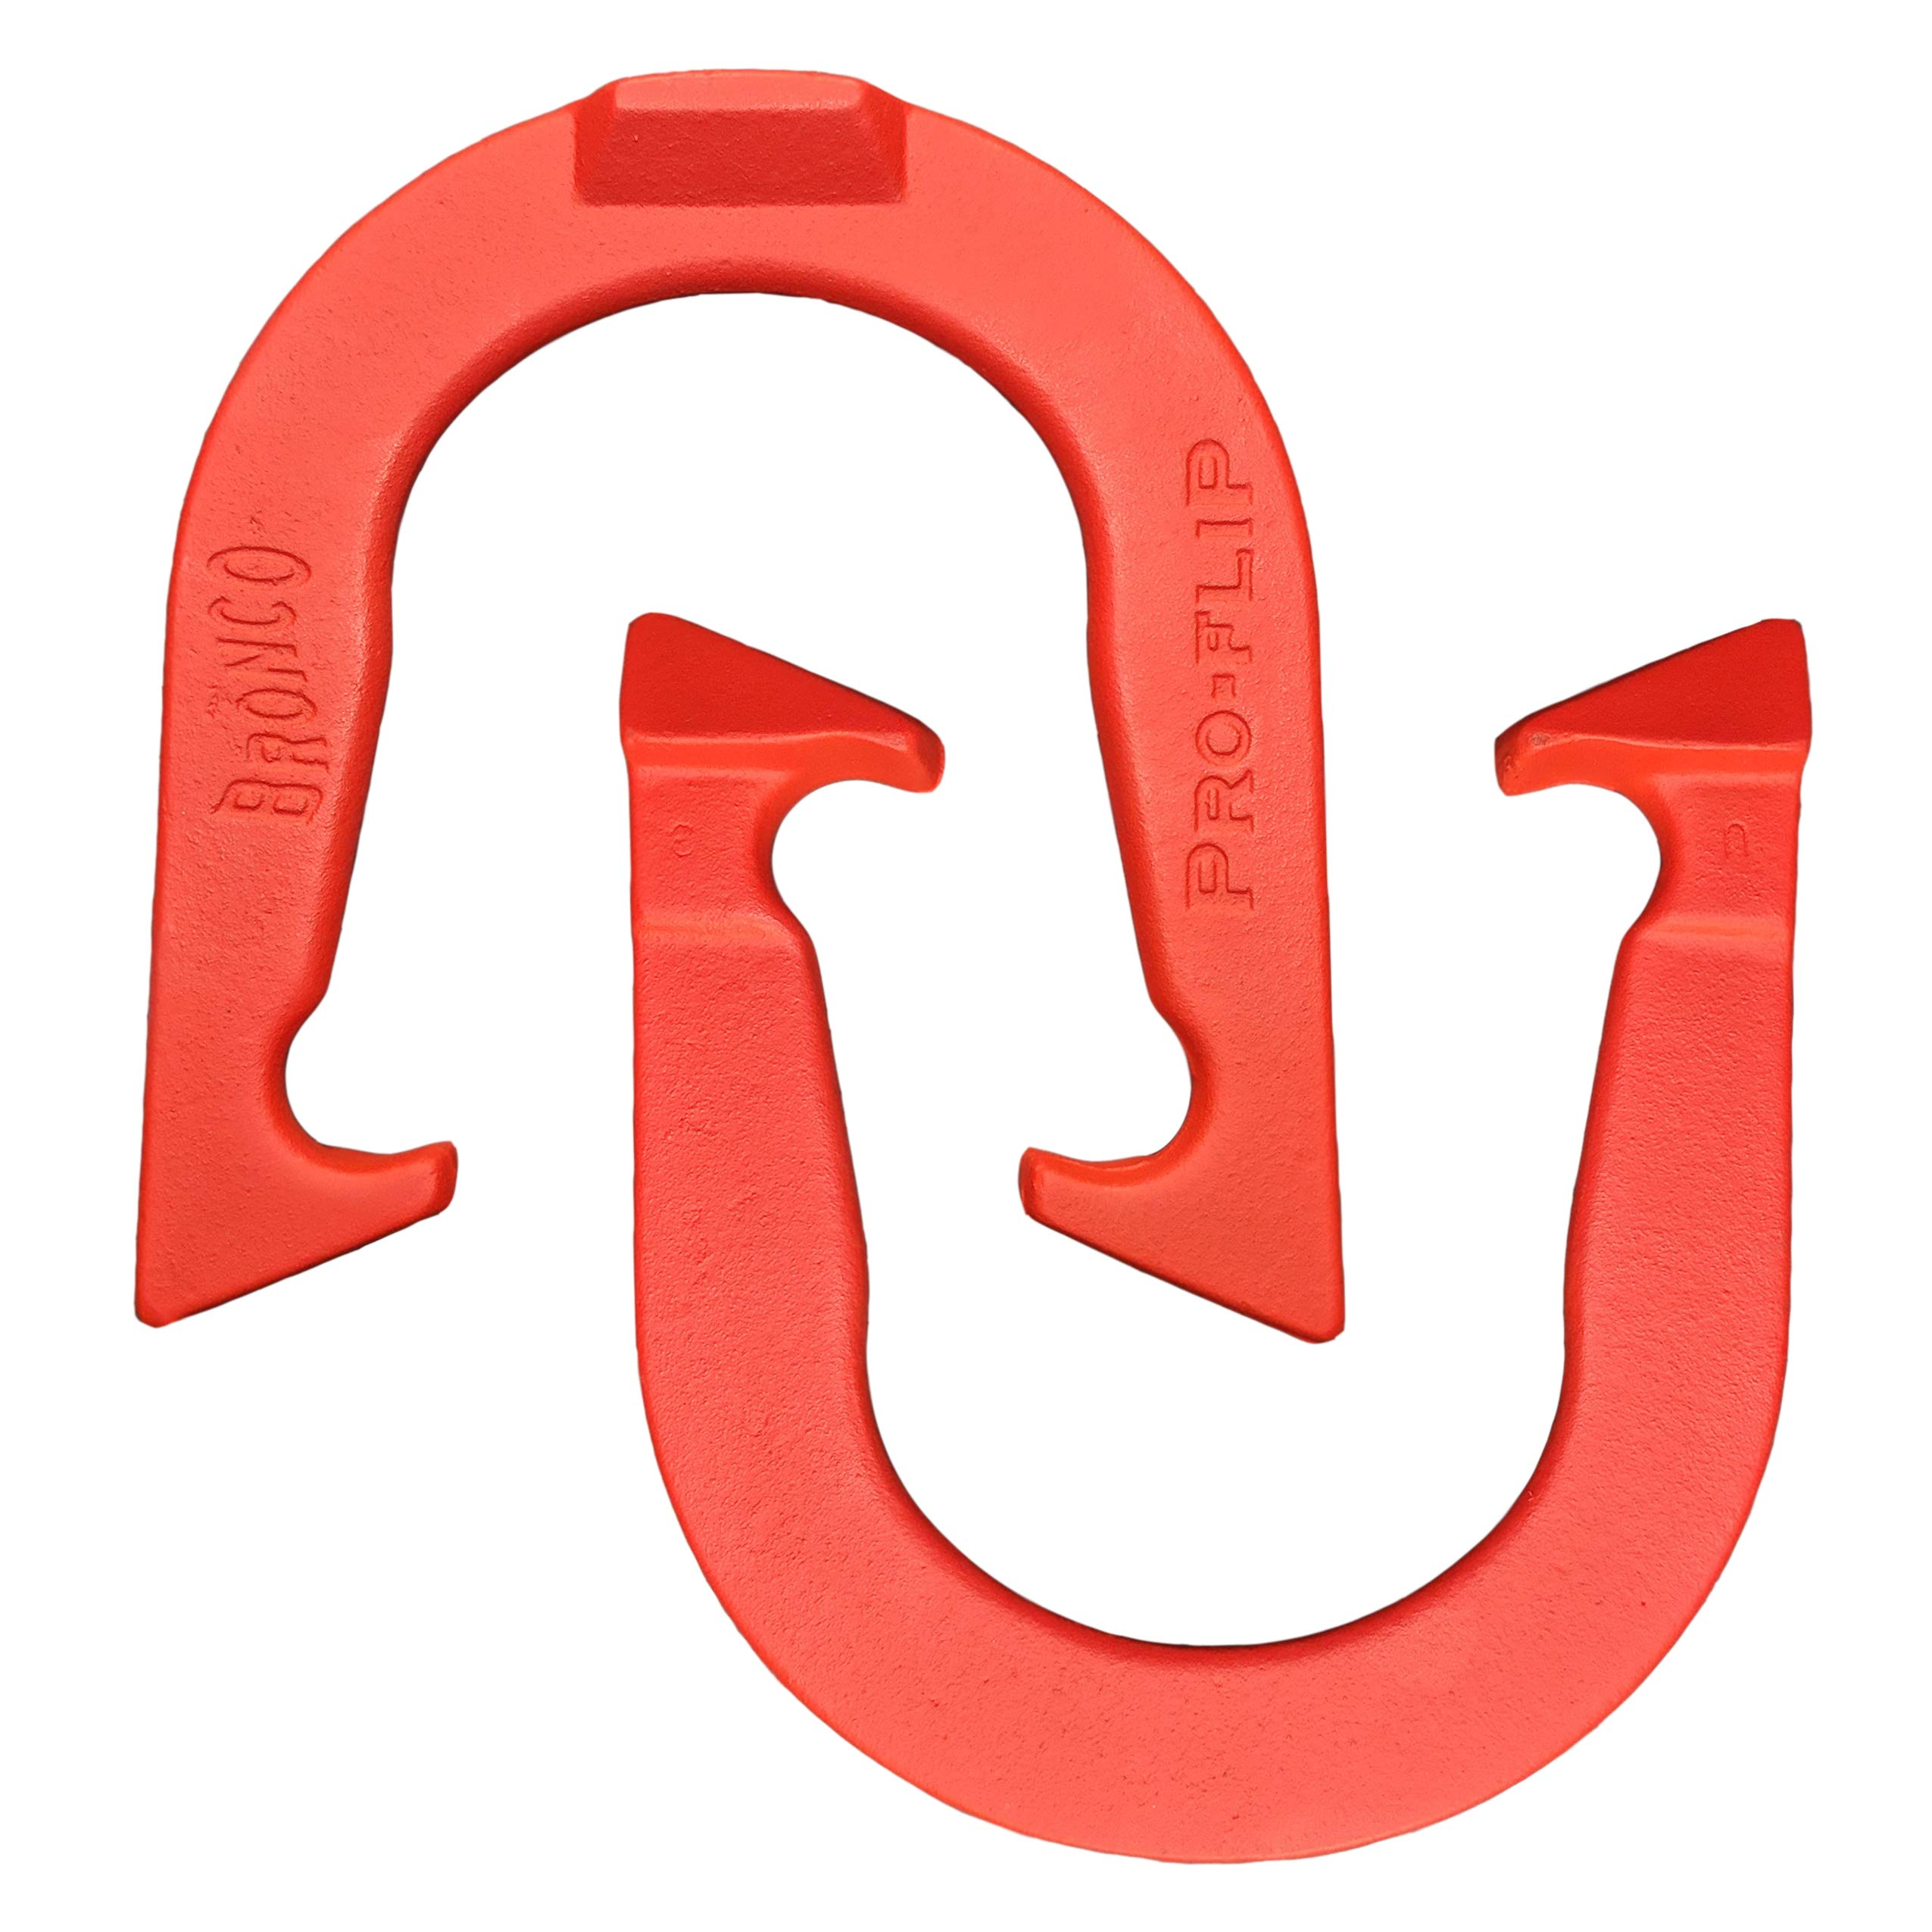 Bronco Pro-Flip Professional Pitching Horseshoes- Made in USA! (Red- Single Pair (2 Shoes)) by Thoroughbred Horseshoes (Image #1)